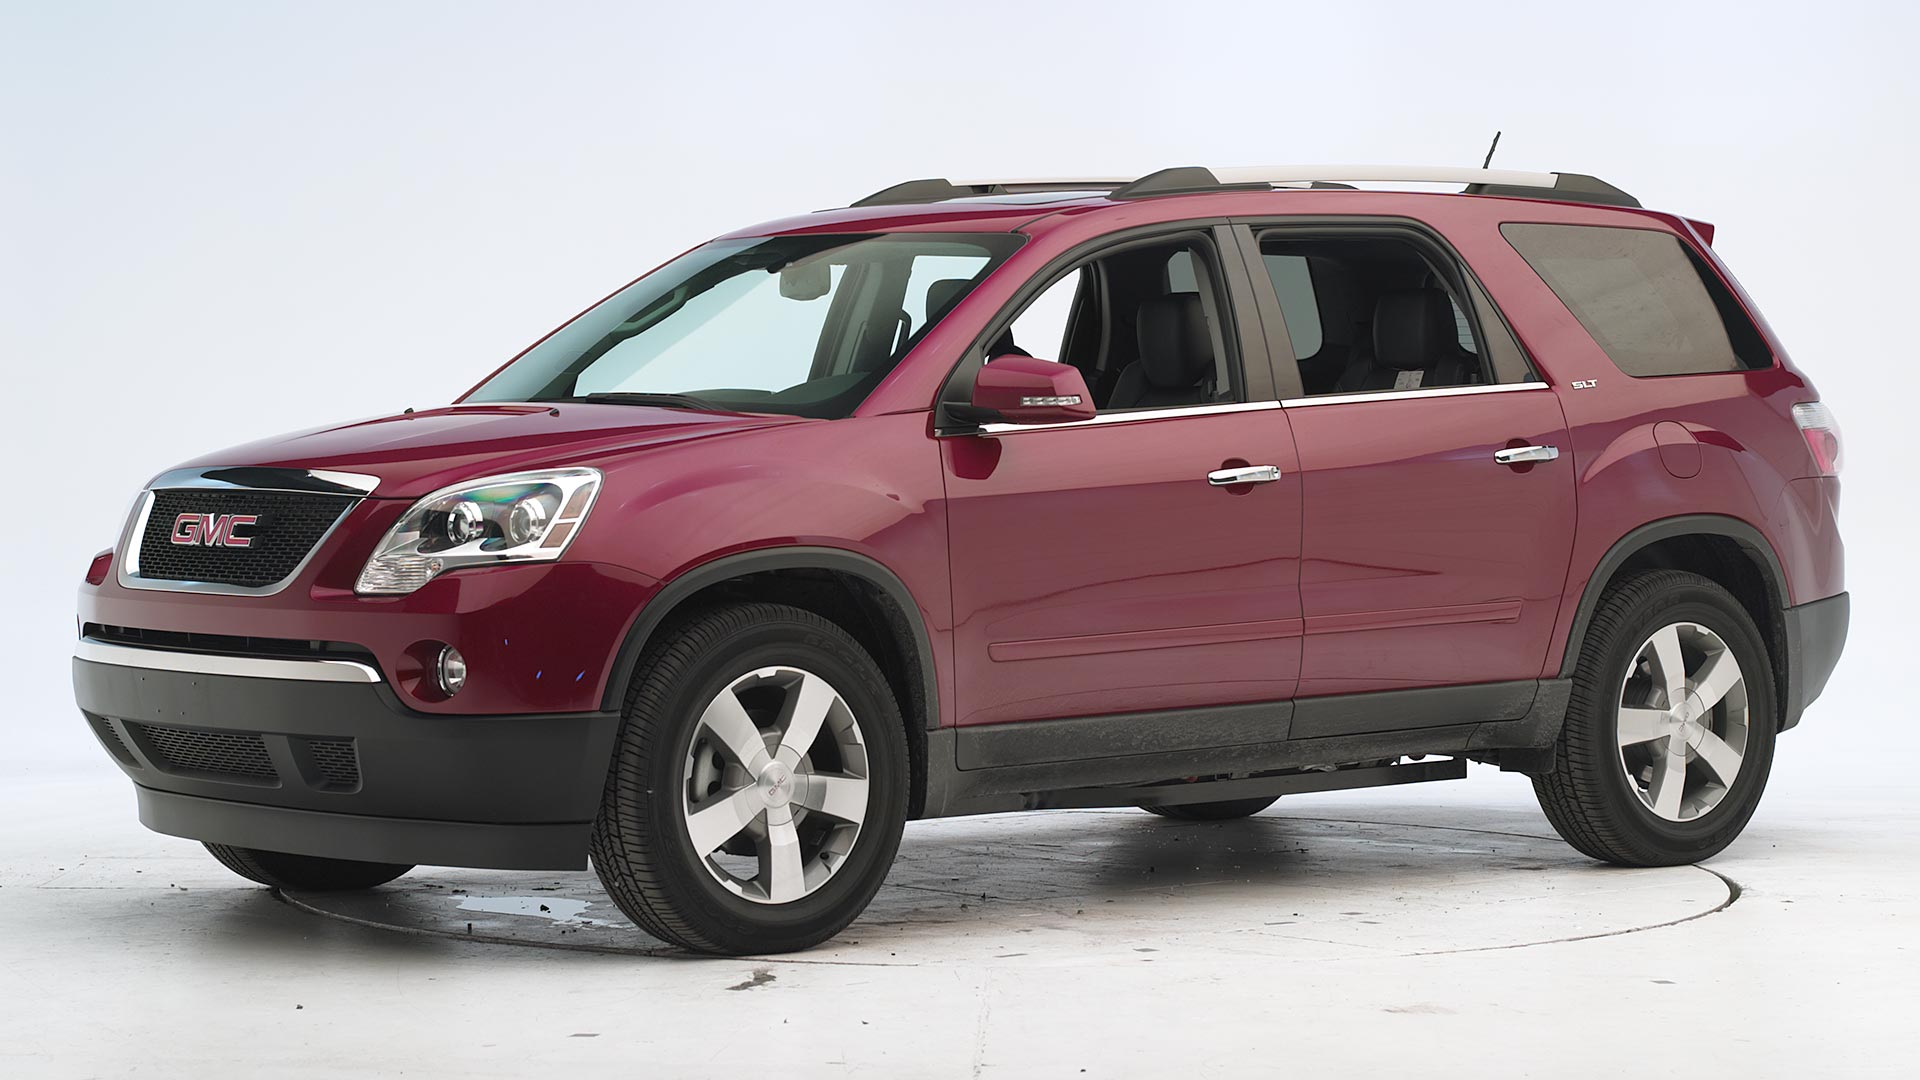 2016 GMC Acadia 4-door SUV